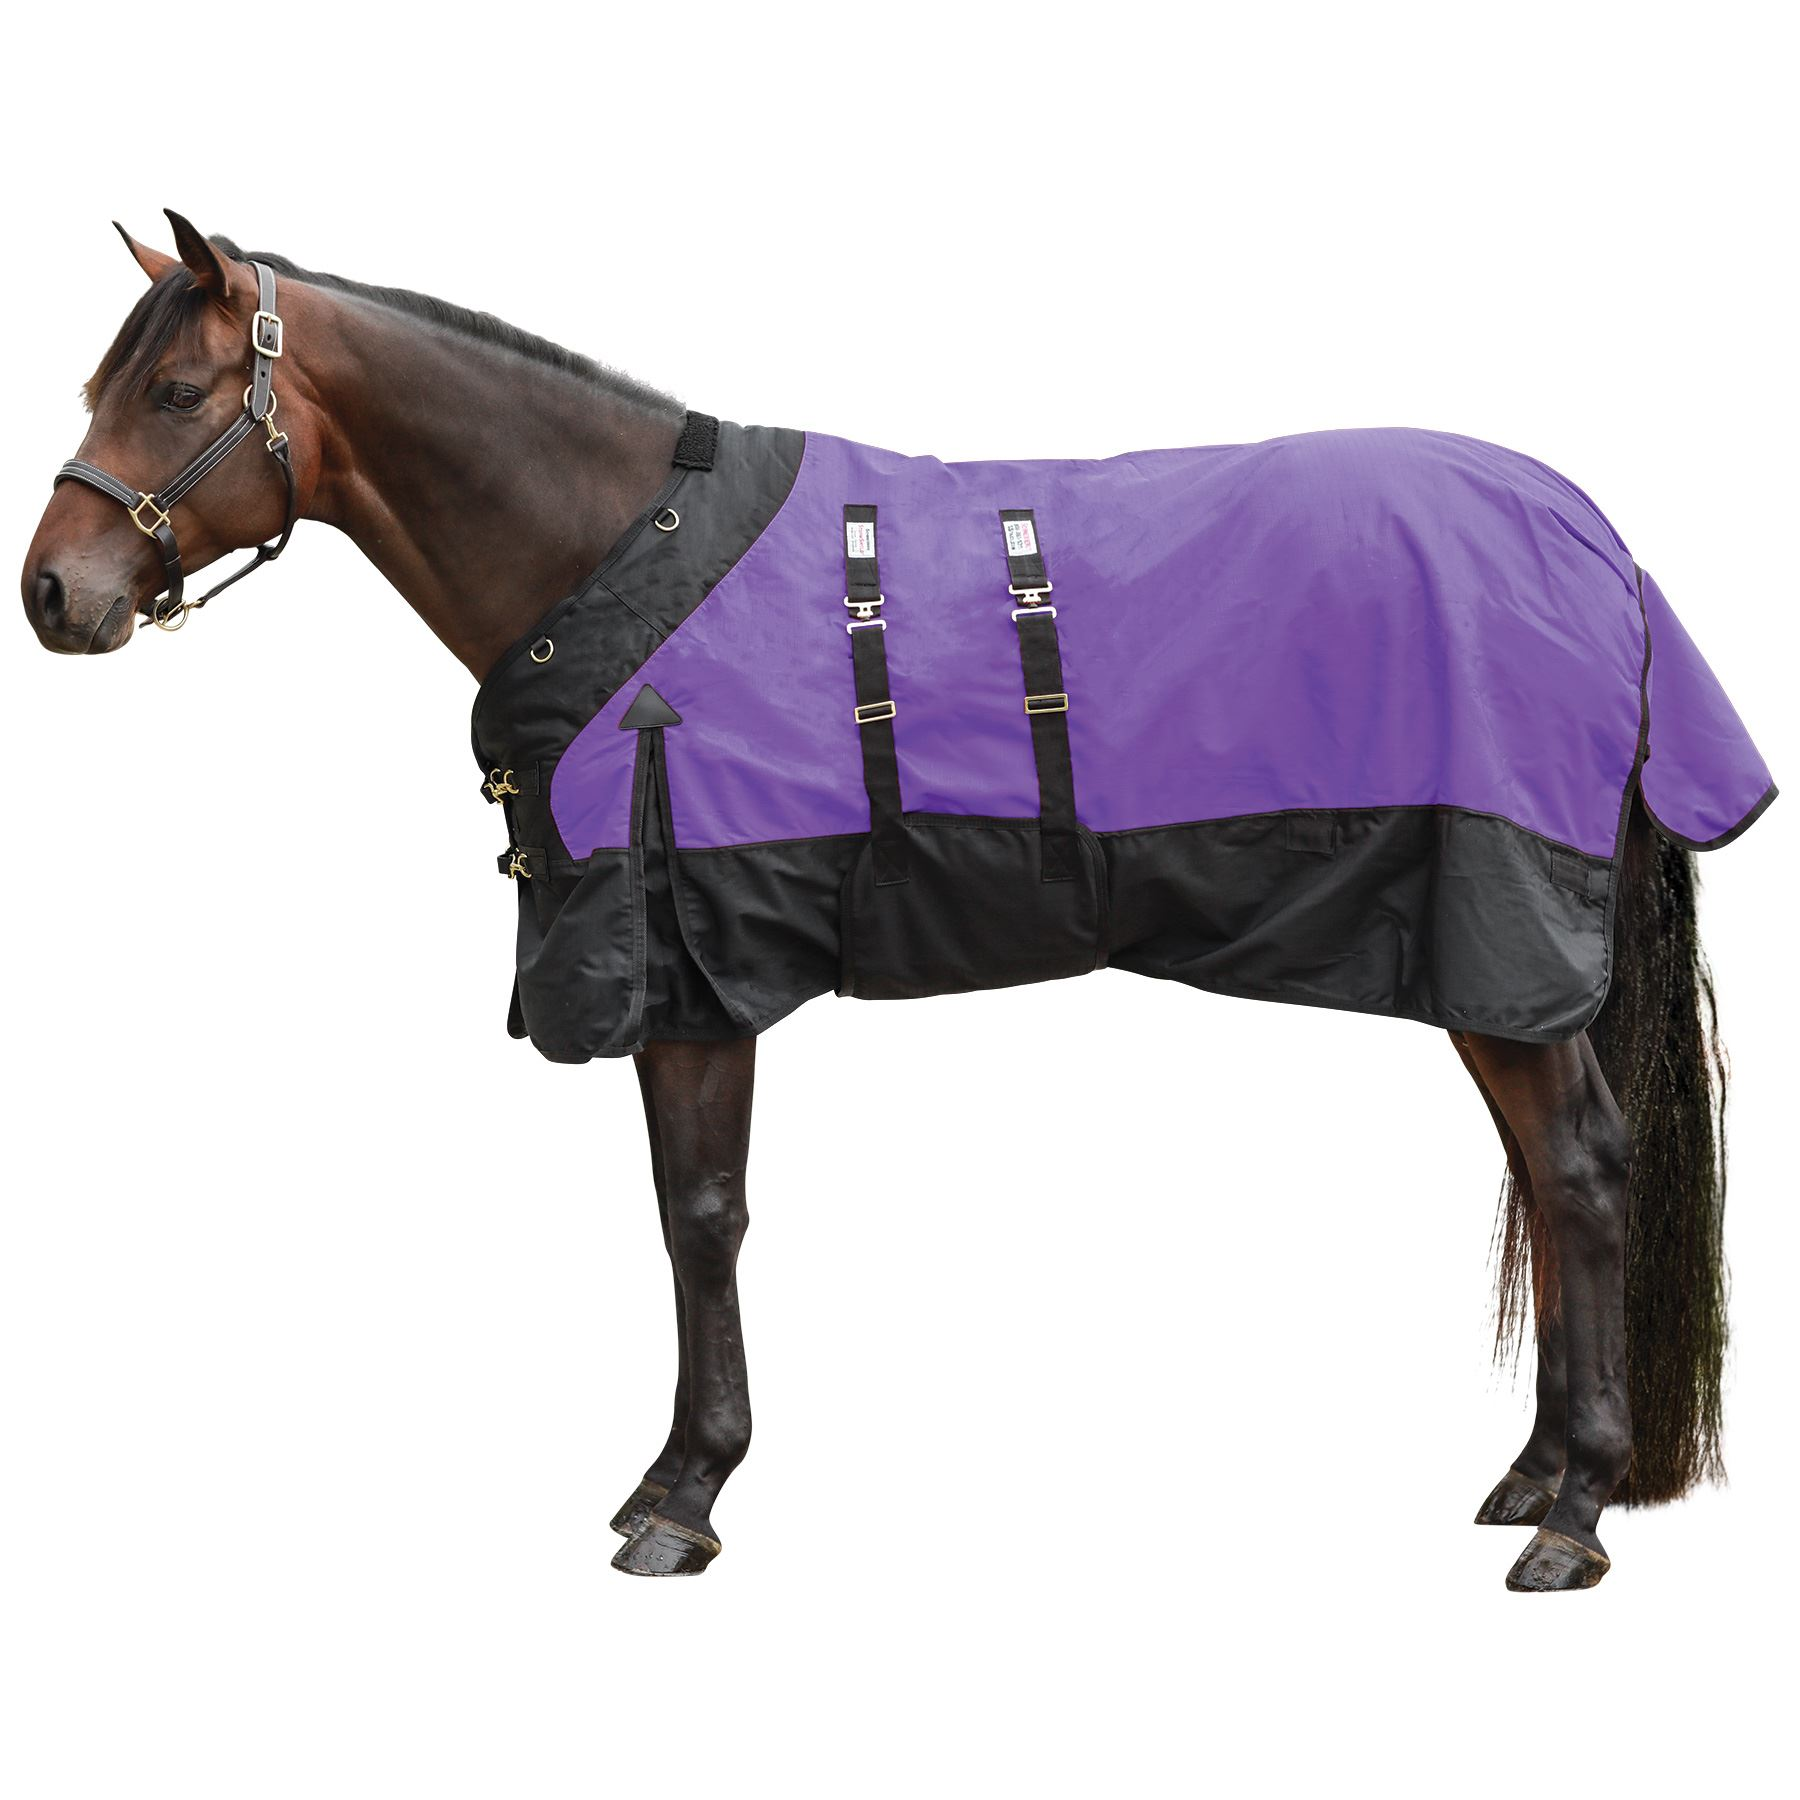 StormShield® Contour Collar Classic Bellyband Turnout Blanket - Midweight